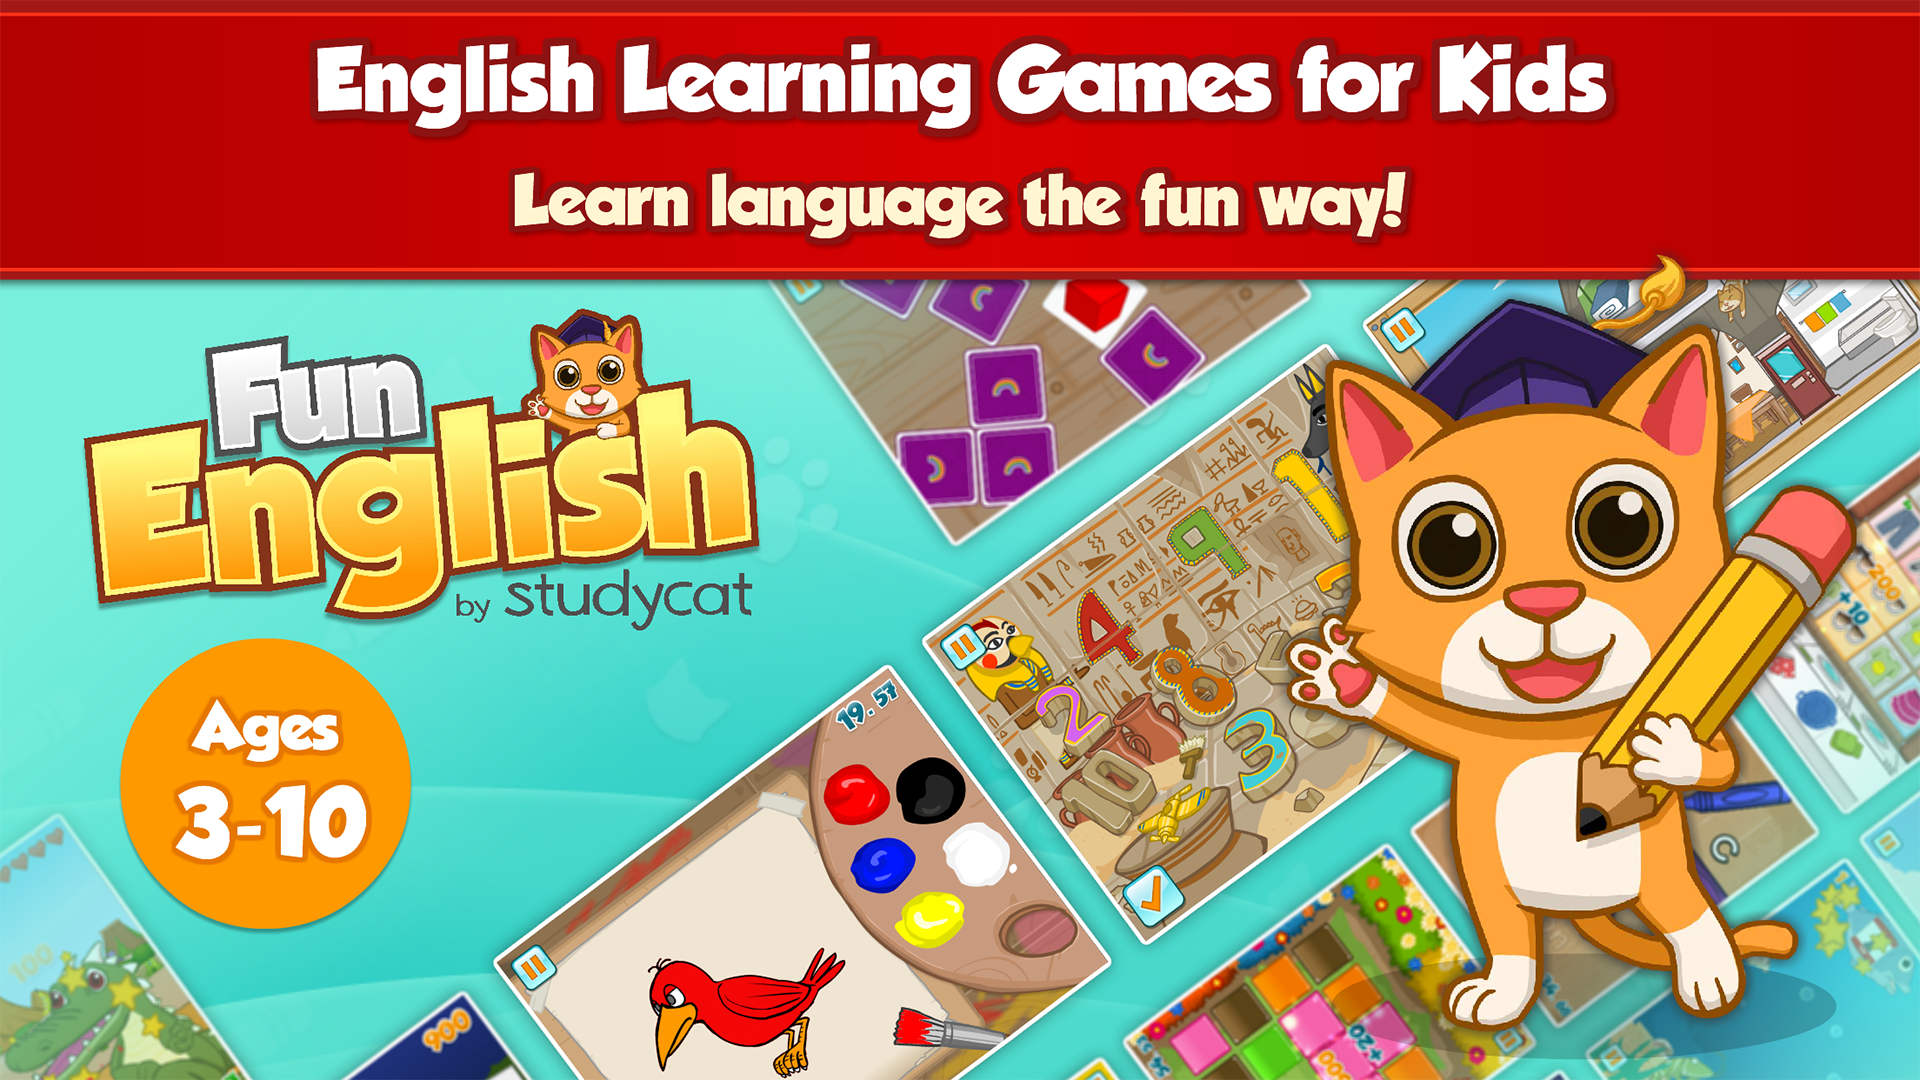 Amazon.com: Fun English: Language Learning Games for Kids: Appstore ...